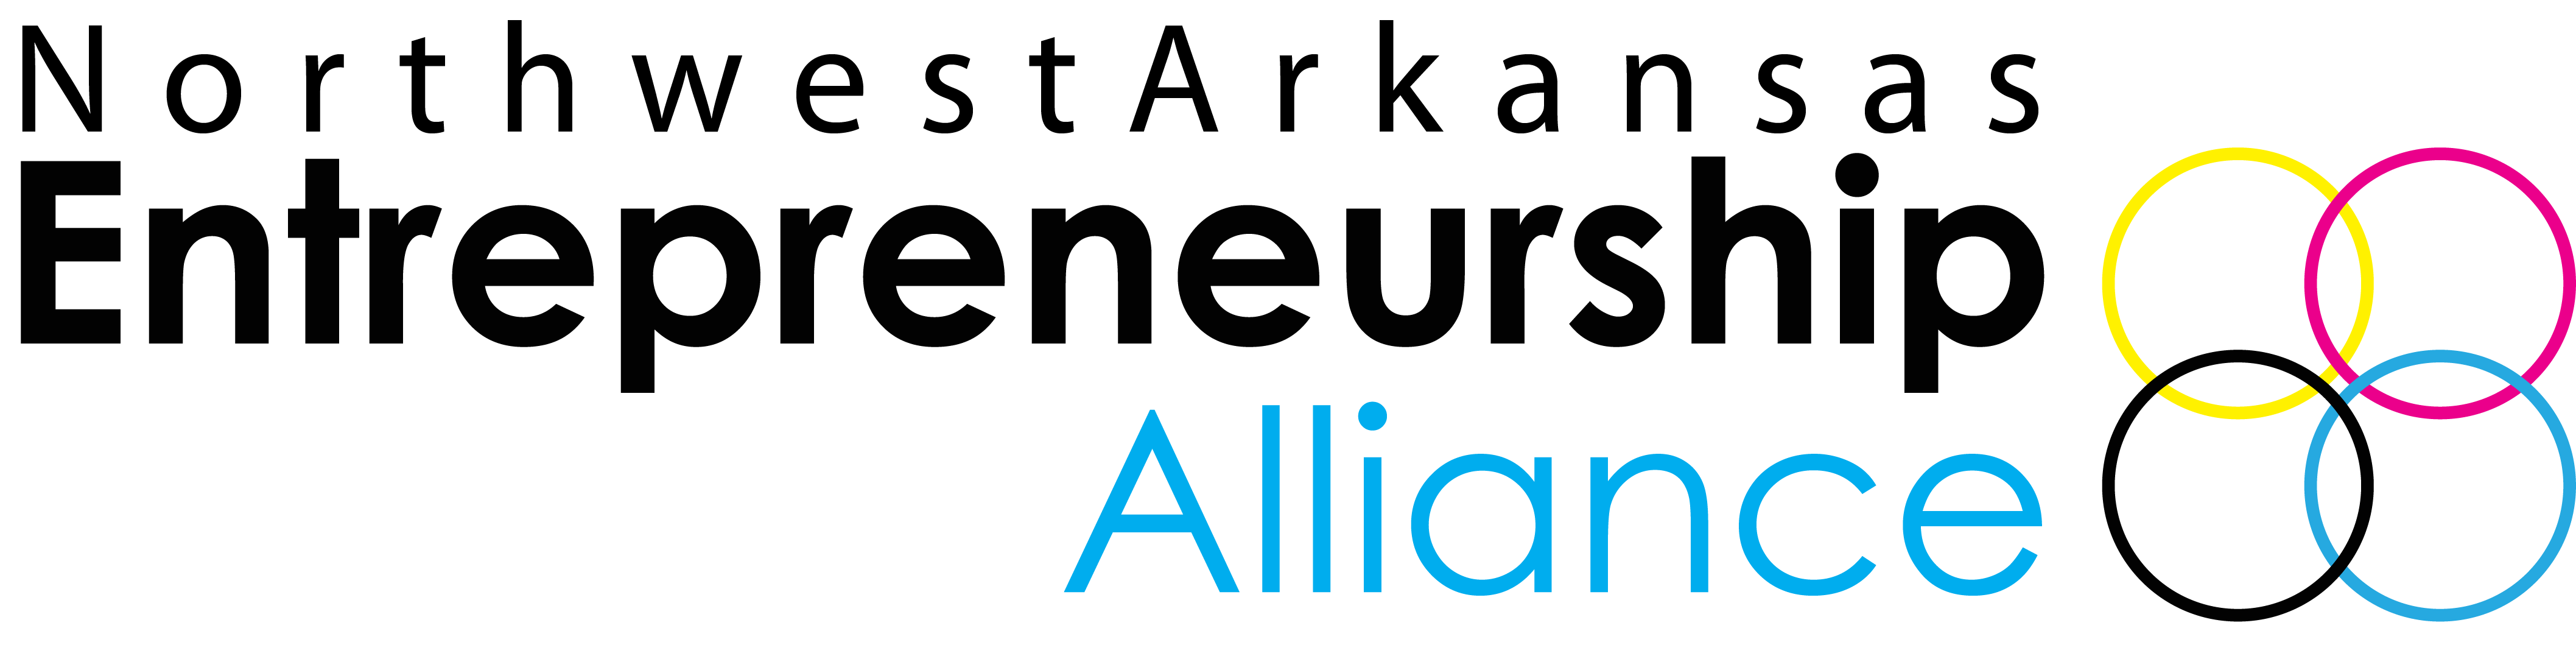 Northwest Arkansas Entrepreneurship Alliance, Inc.